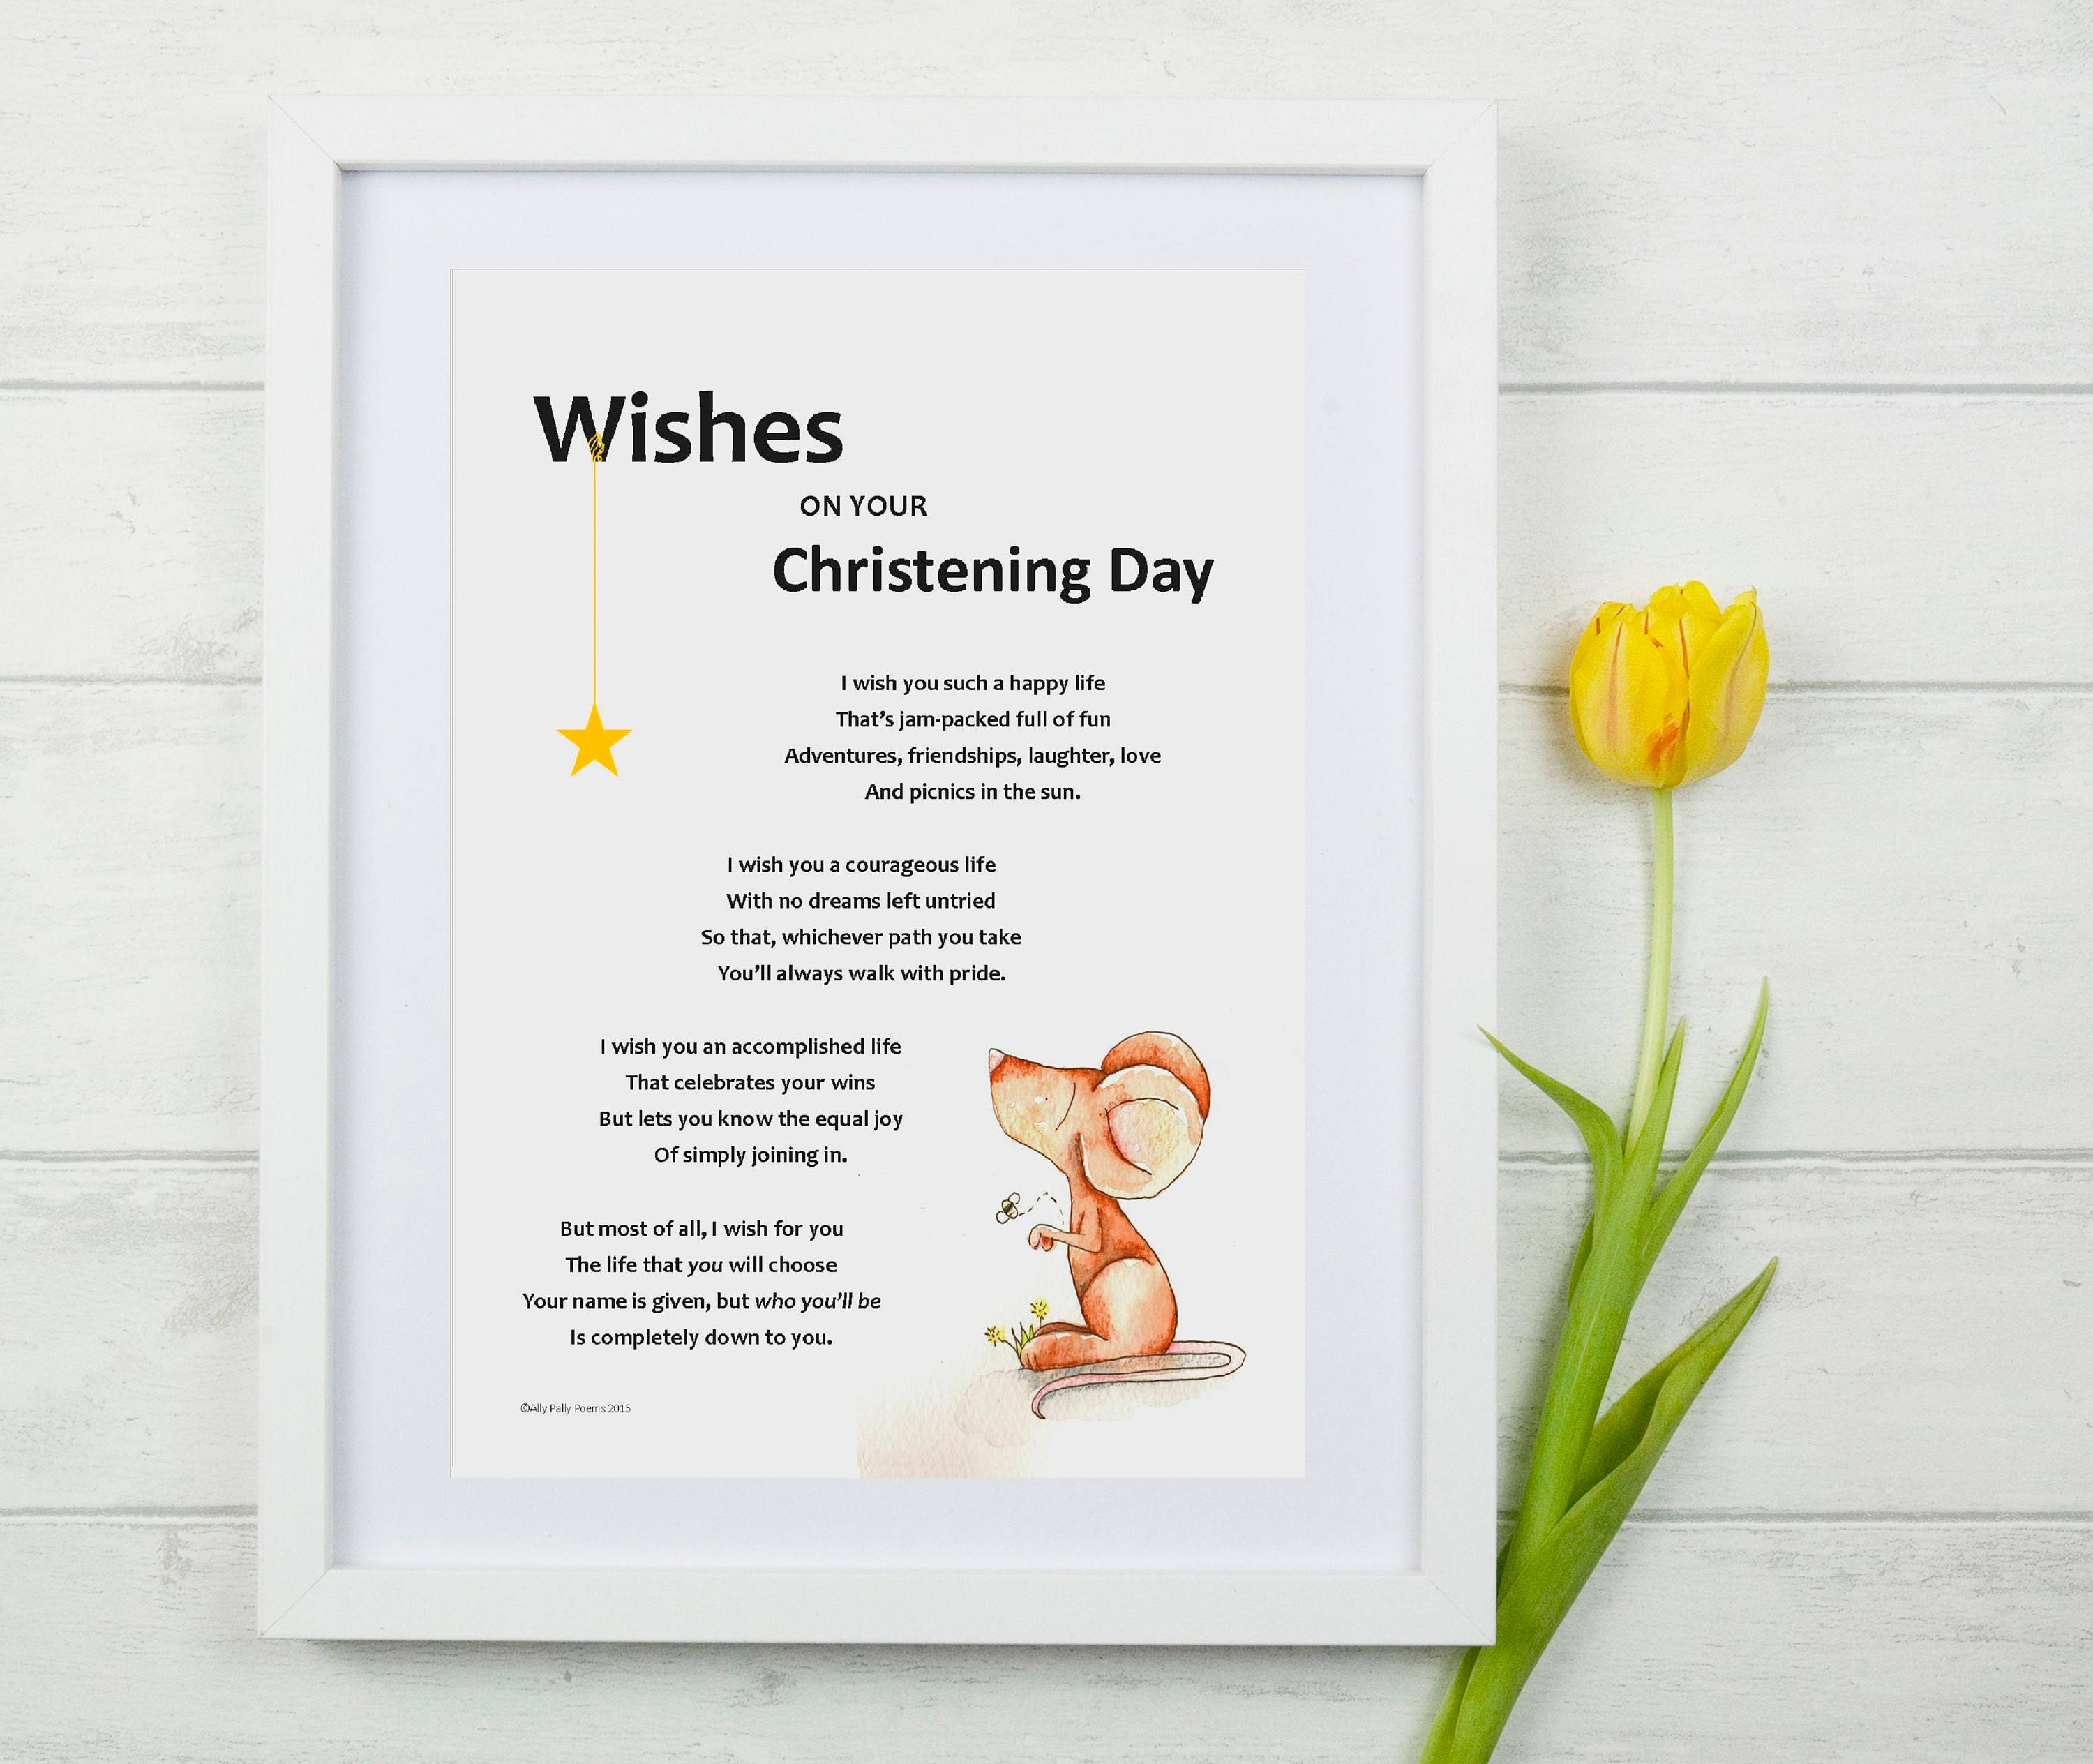 Wishes on your christening day illustrated poem unique baby zoom kristyandbryce Choice Image